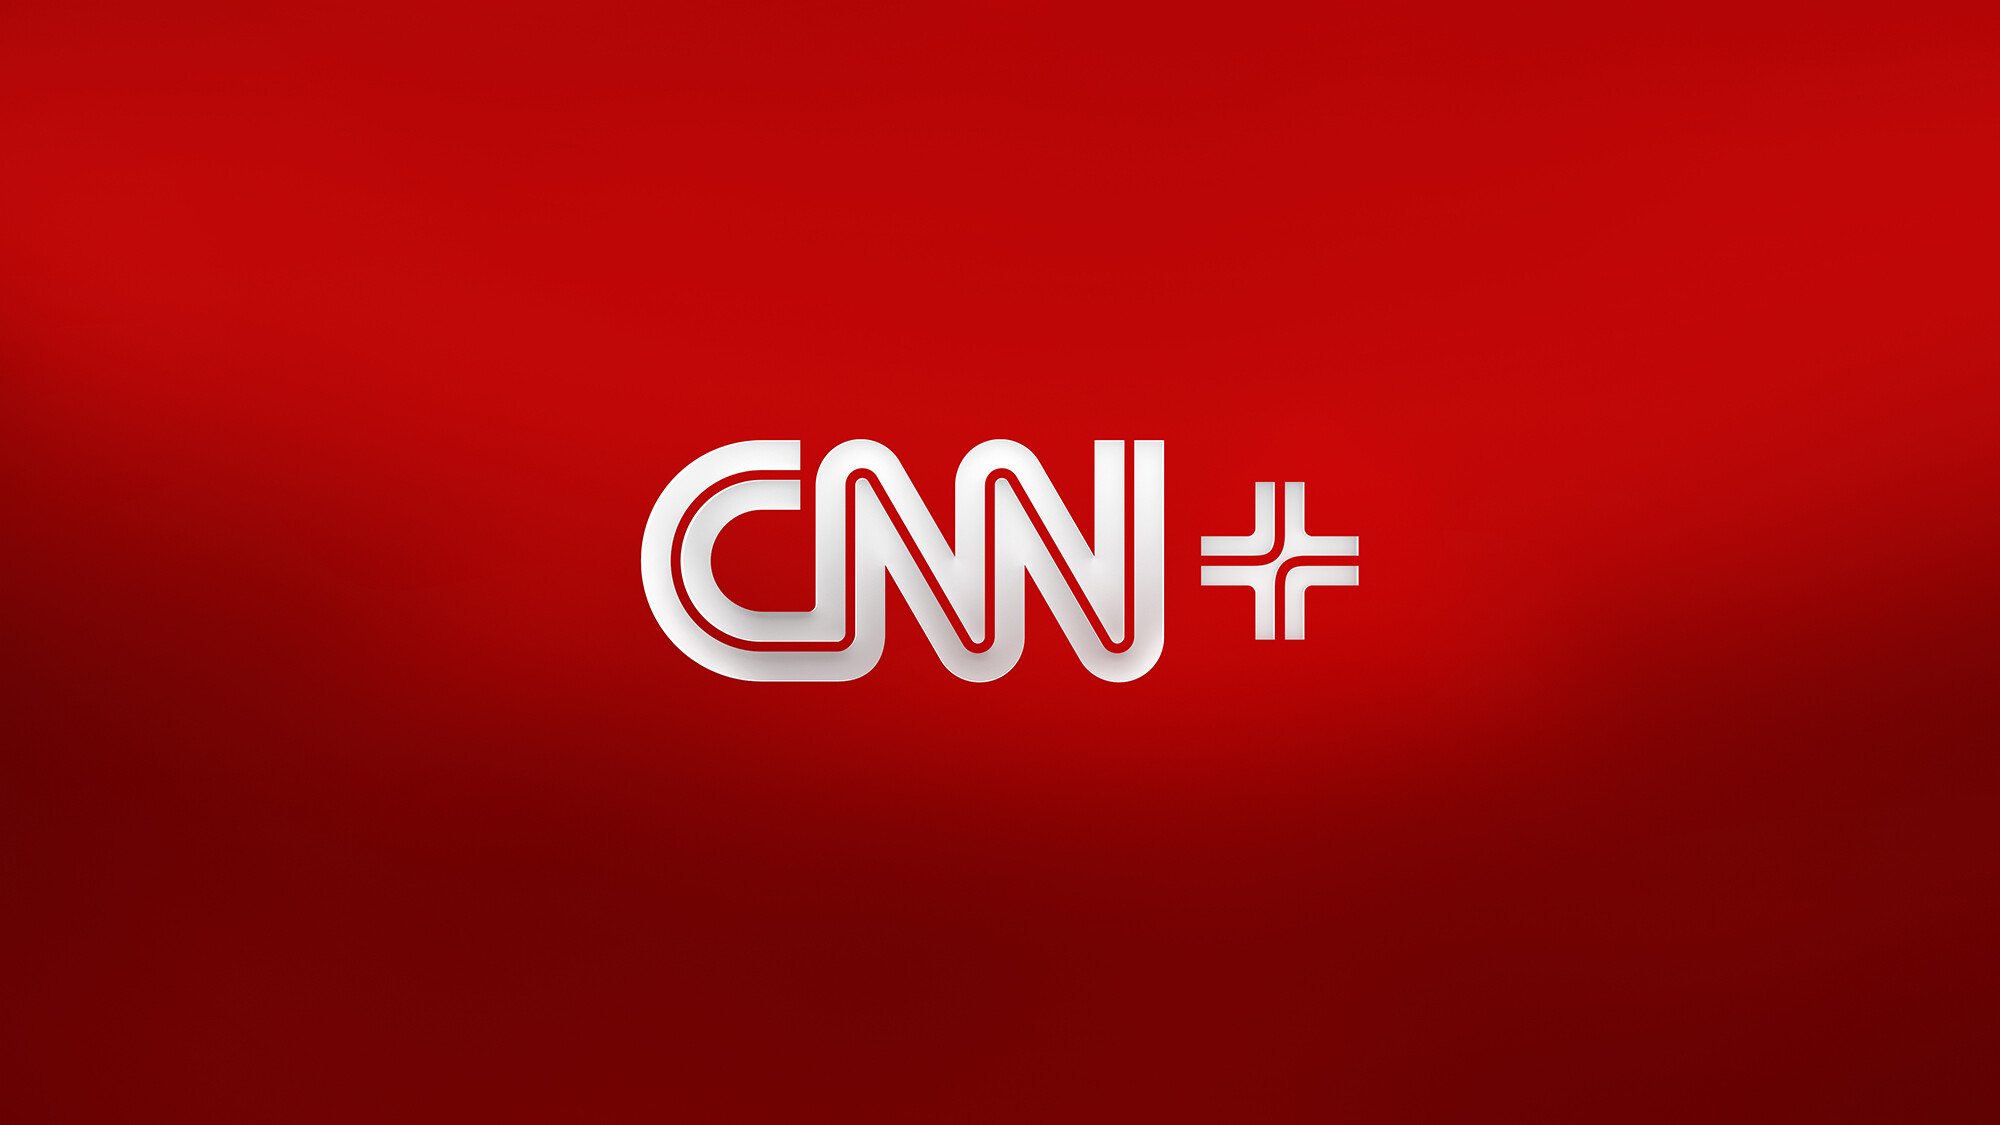 CNN announces CNN+, 'most important launch for network since Ted Turner'